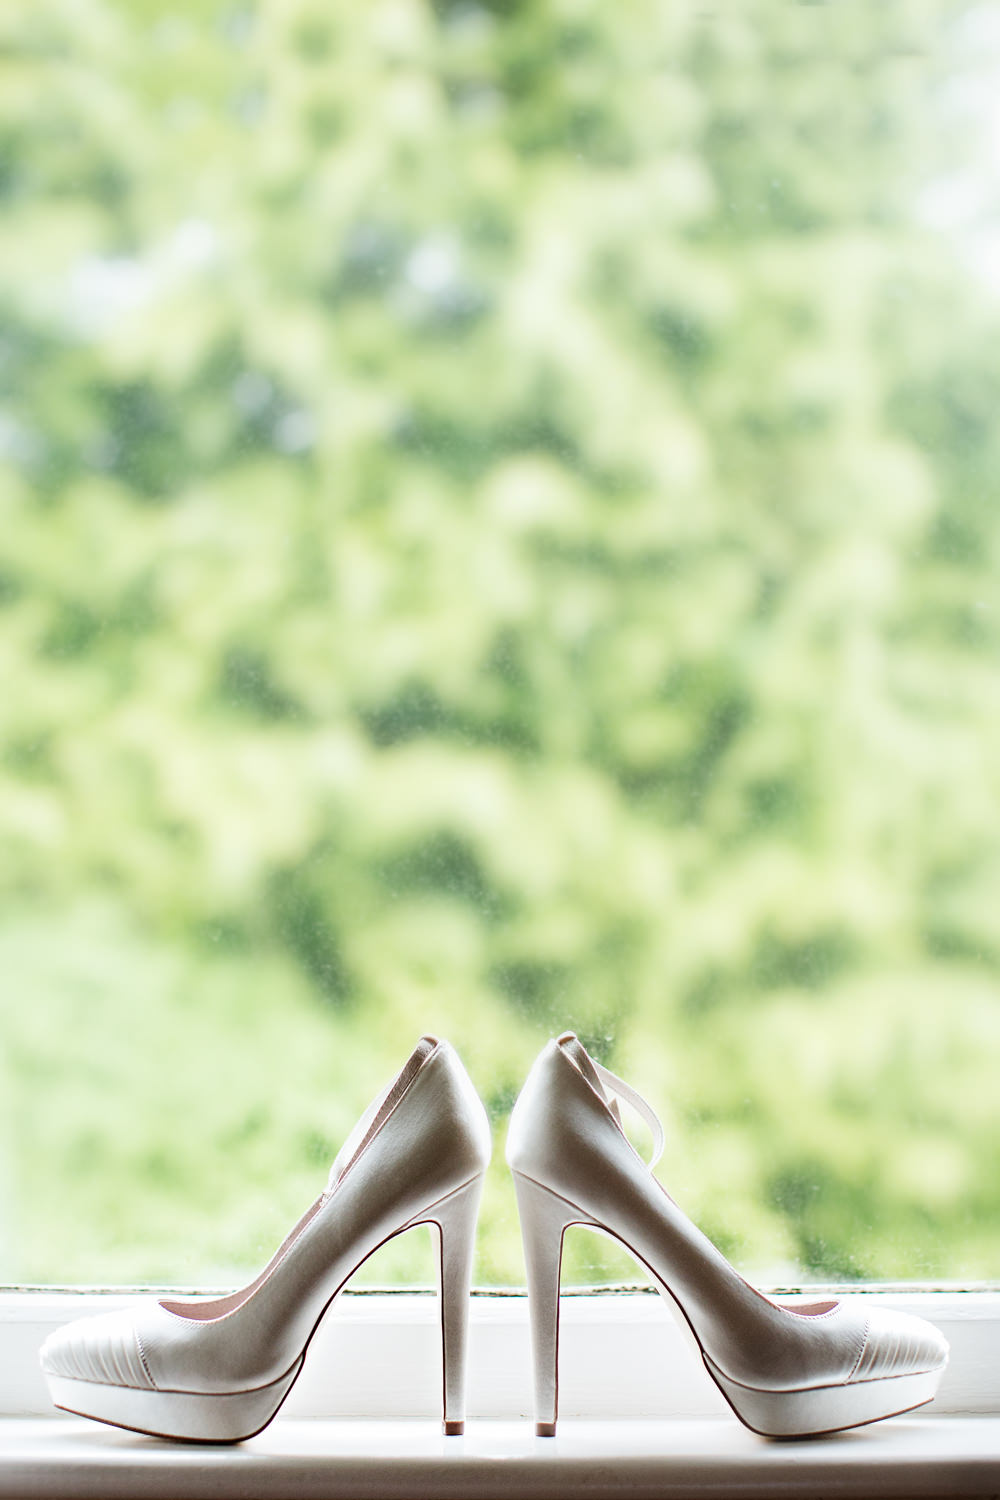 Wedding shoes at a Gawsworth hall wedding in Macclesfield